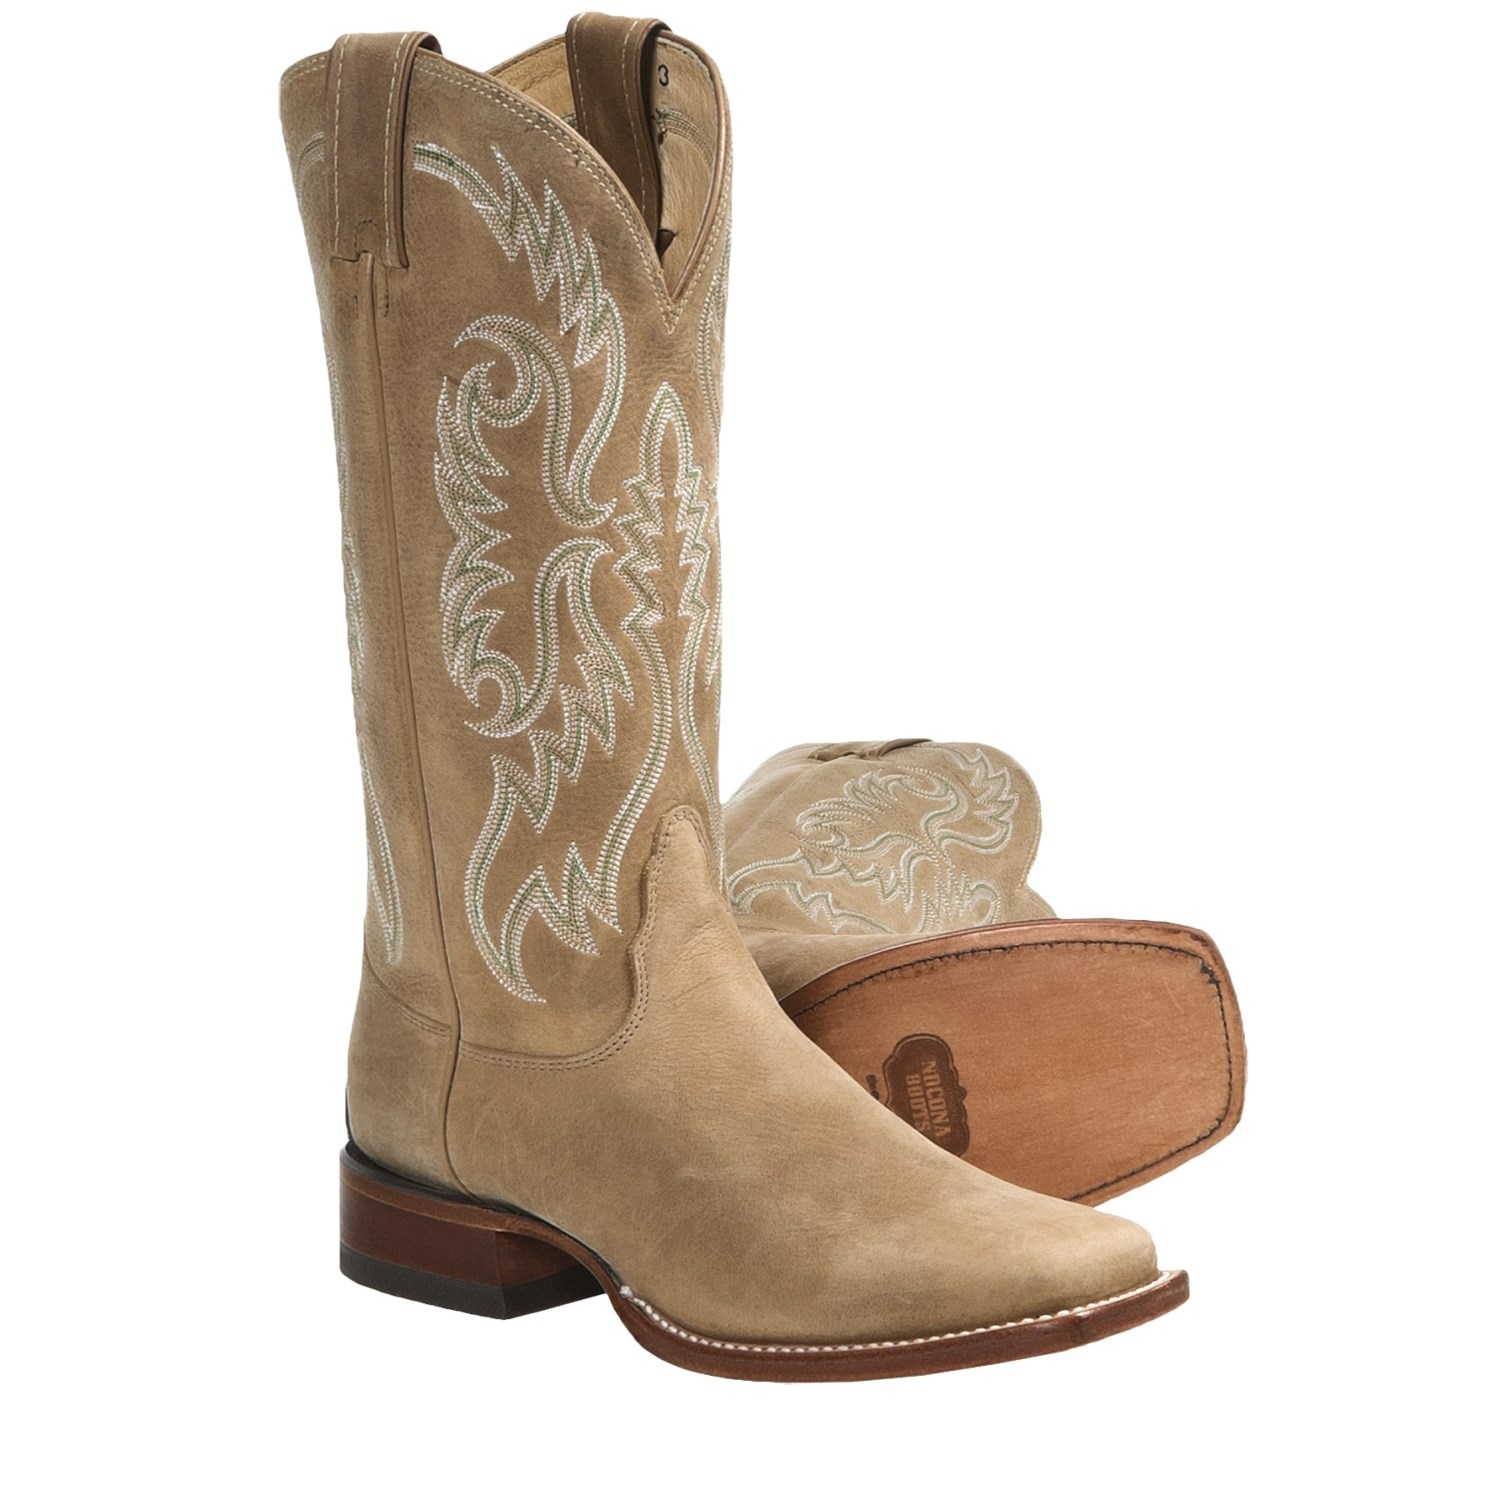 Nocona Boots Square Toe Cowboy Boots For Women 5319r